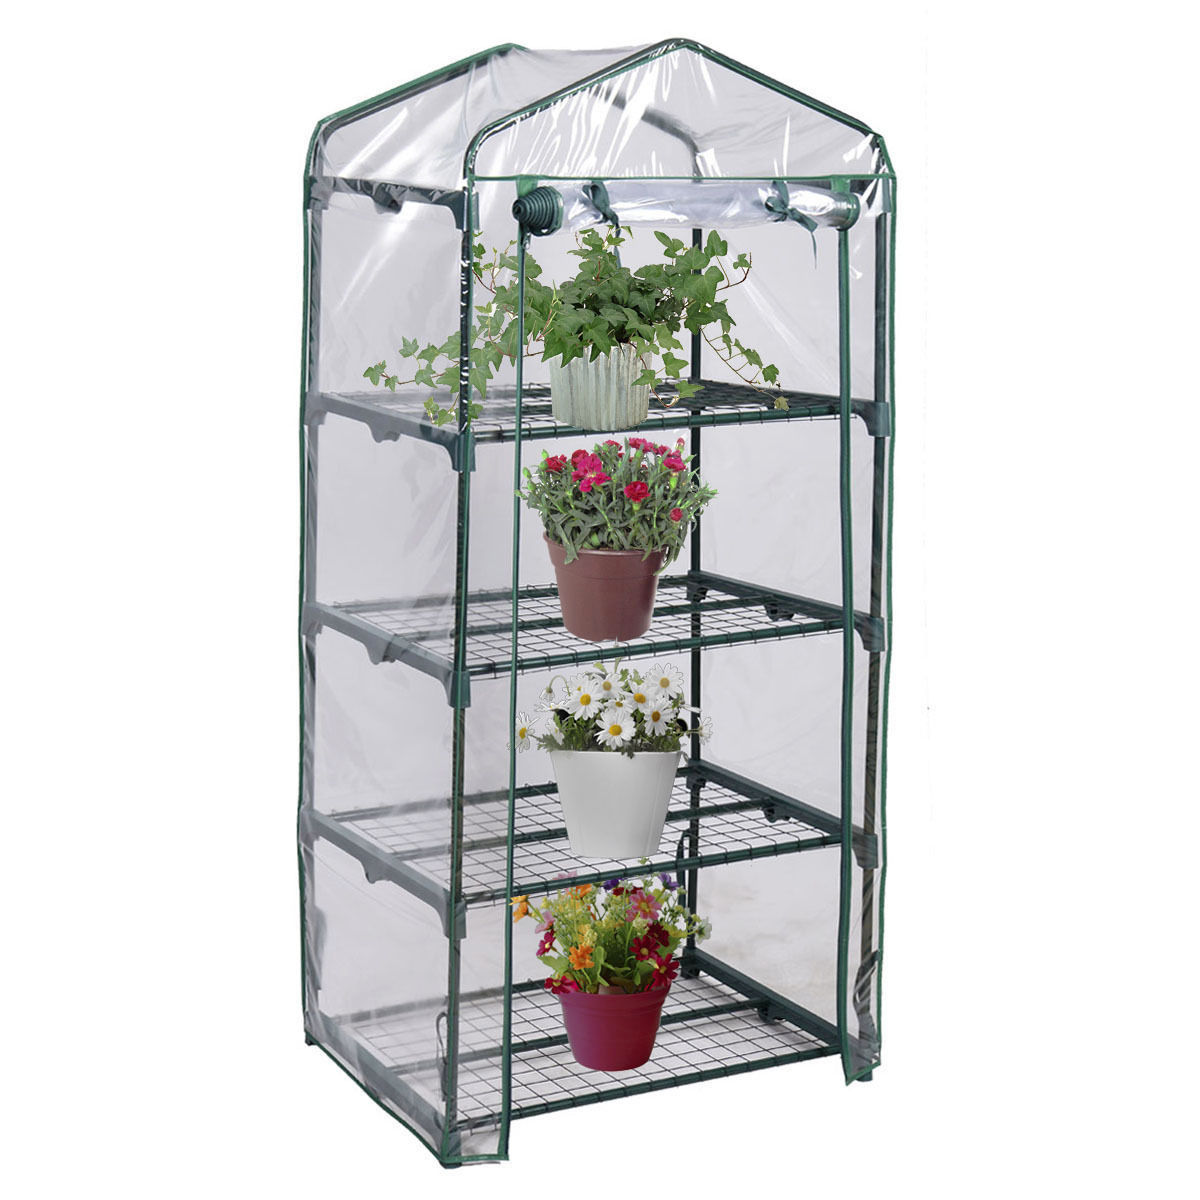 70x50x160cm Large Garden Greenhouse 4 Tier Tall Green Hot Plant House Shed Storage PVC Warm Garden